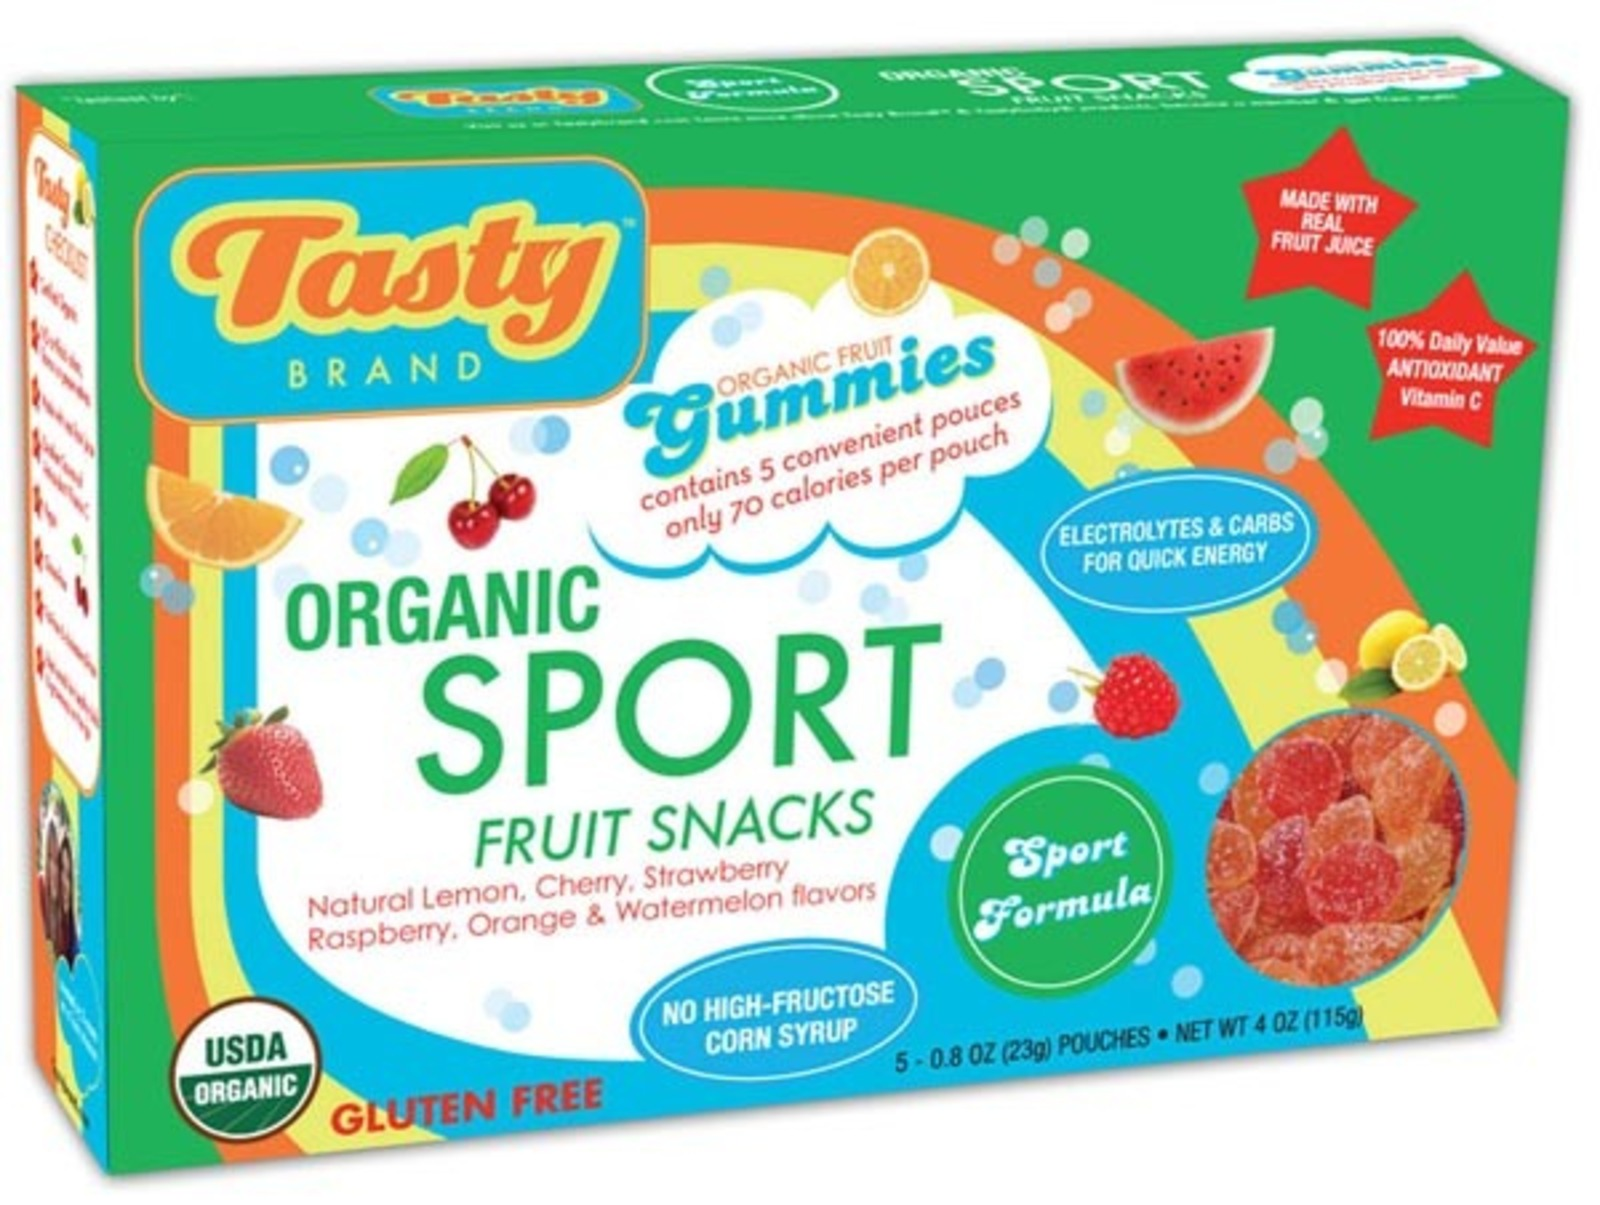 Tasty Brand Healthy Snacks Cool Hunting